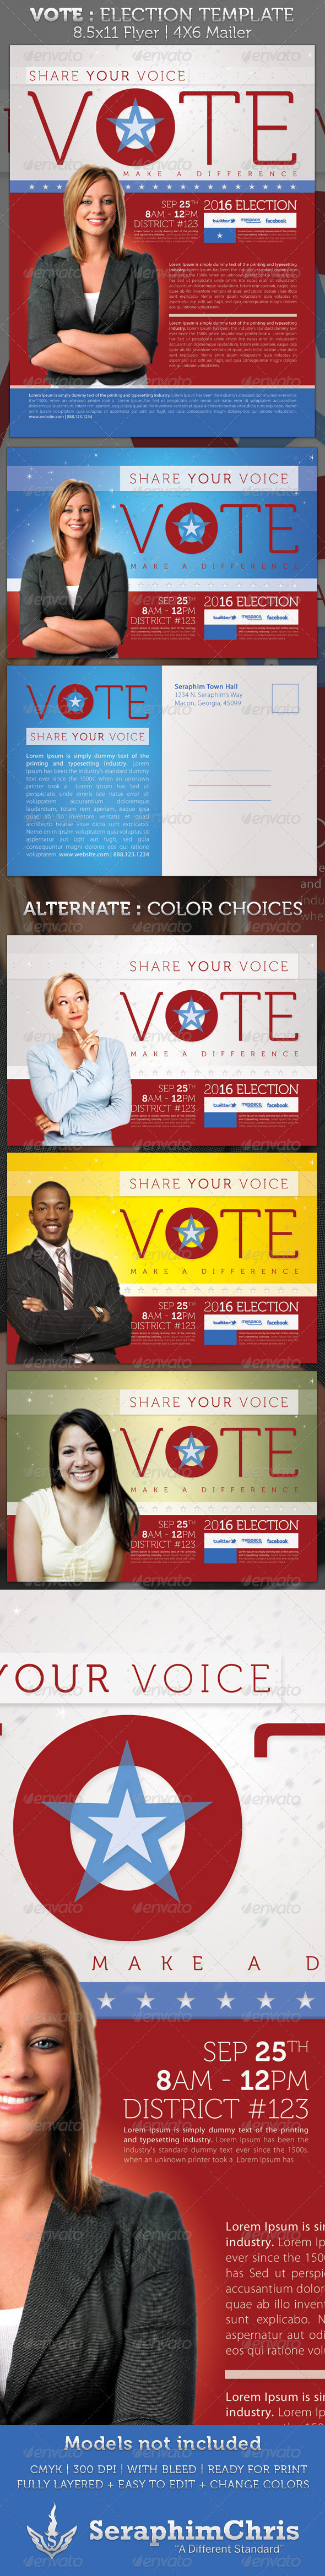 campaign mailer template - campaign letters for re election